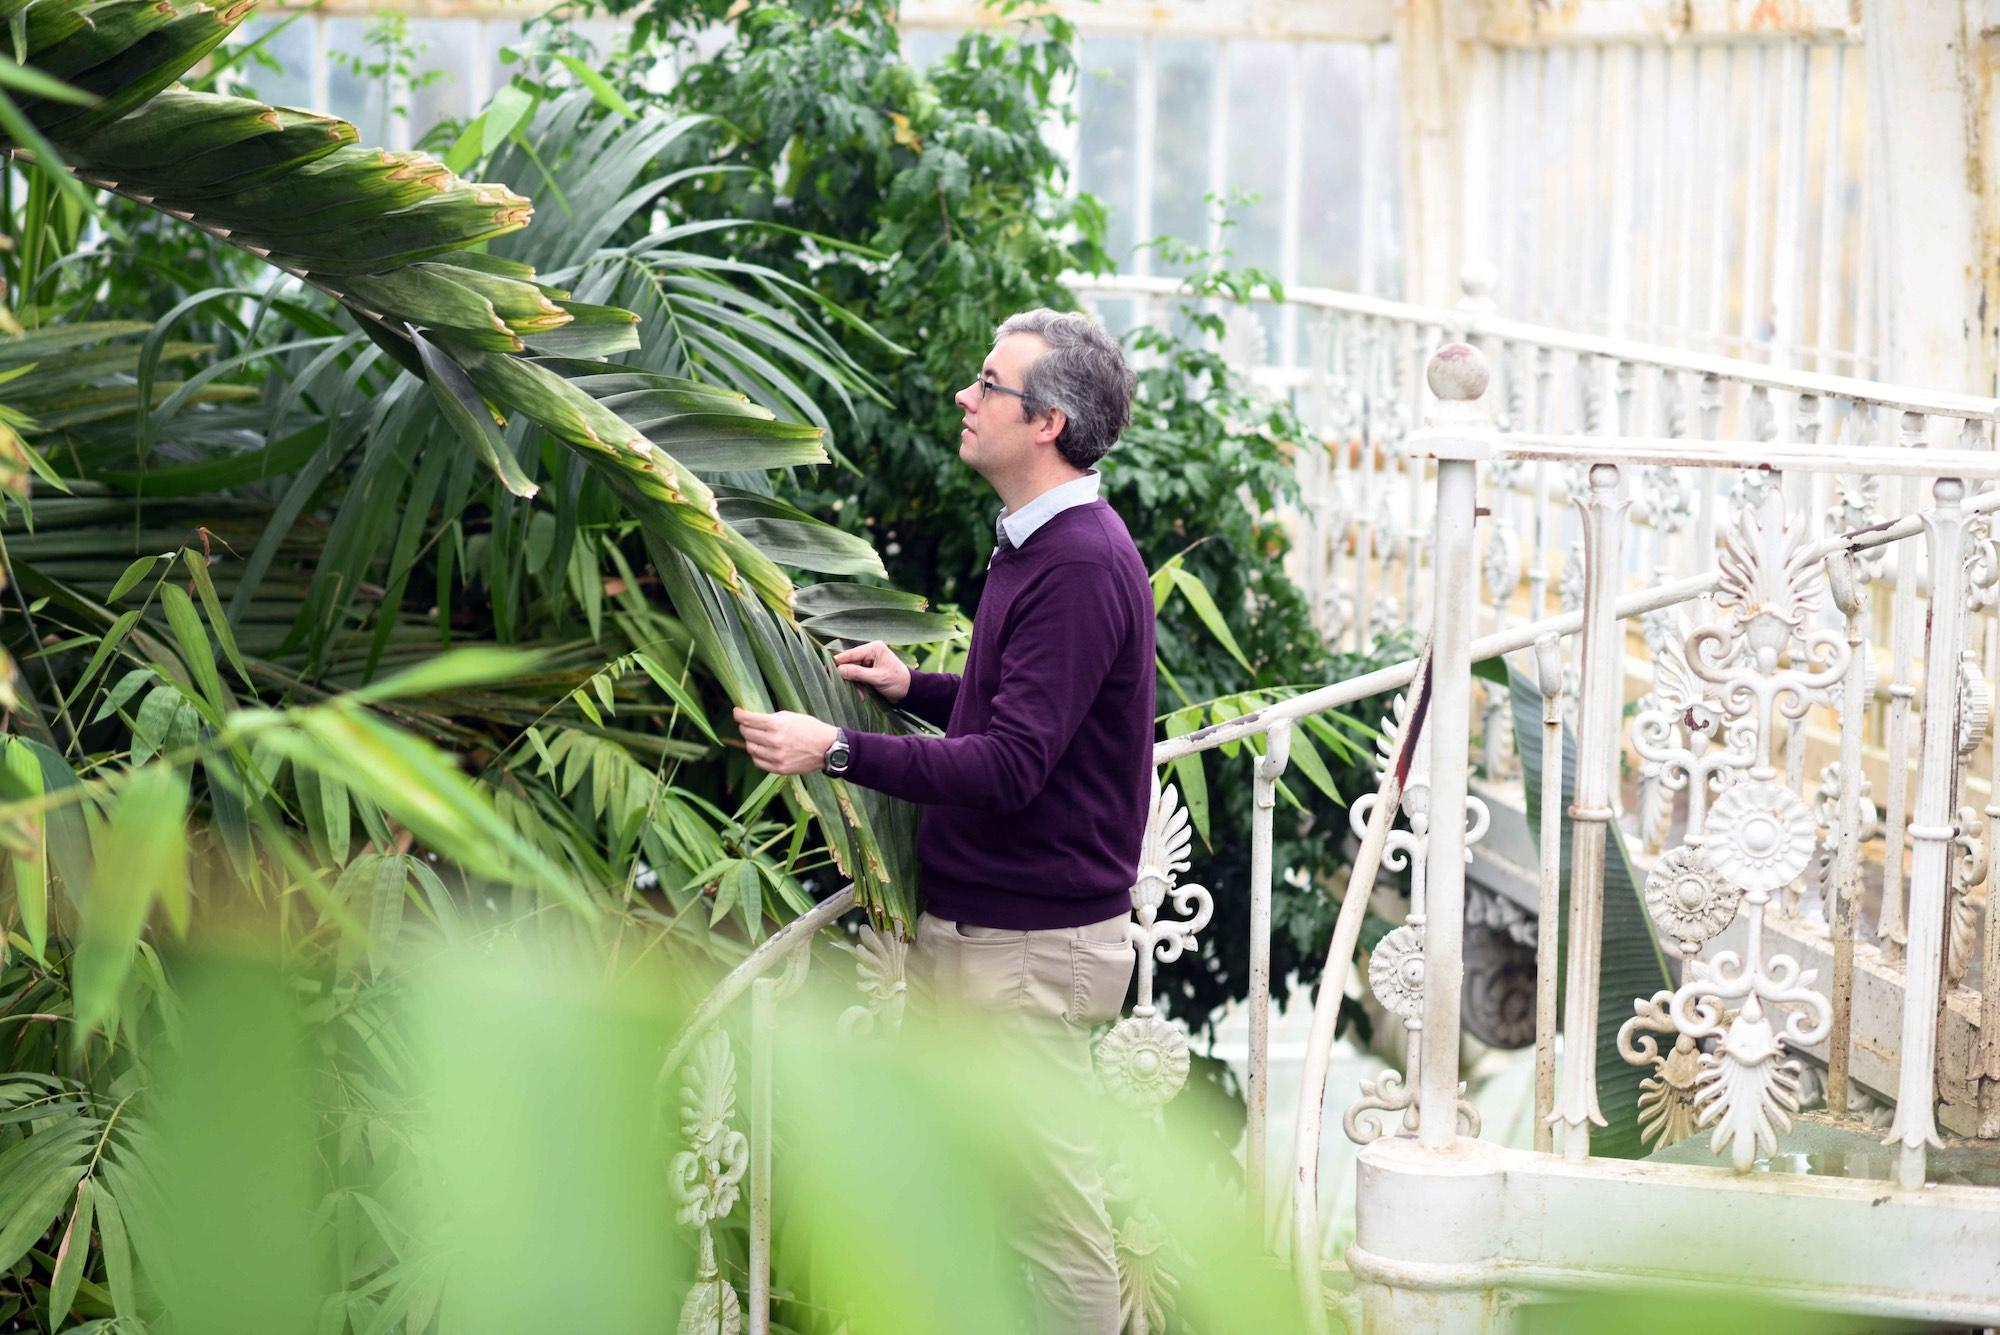 A scientist examines plants in the Palm House. - © Jeff Eden